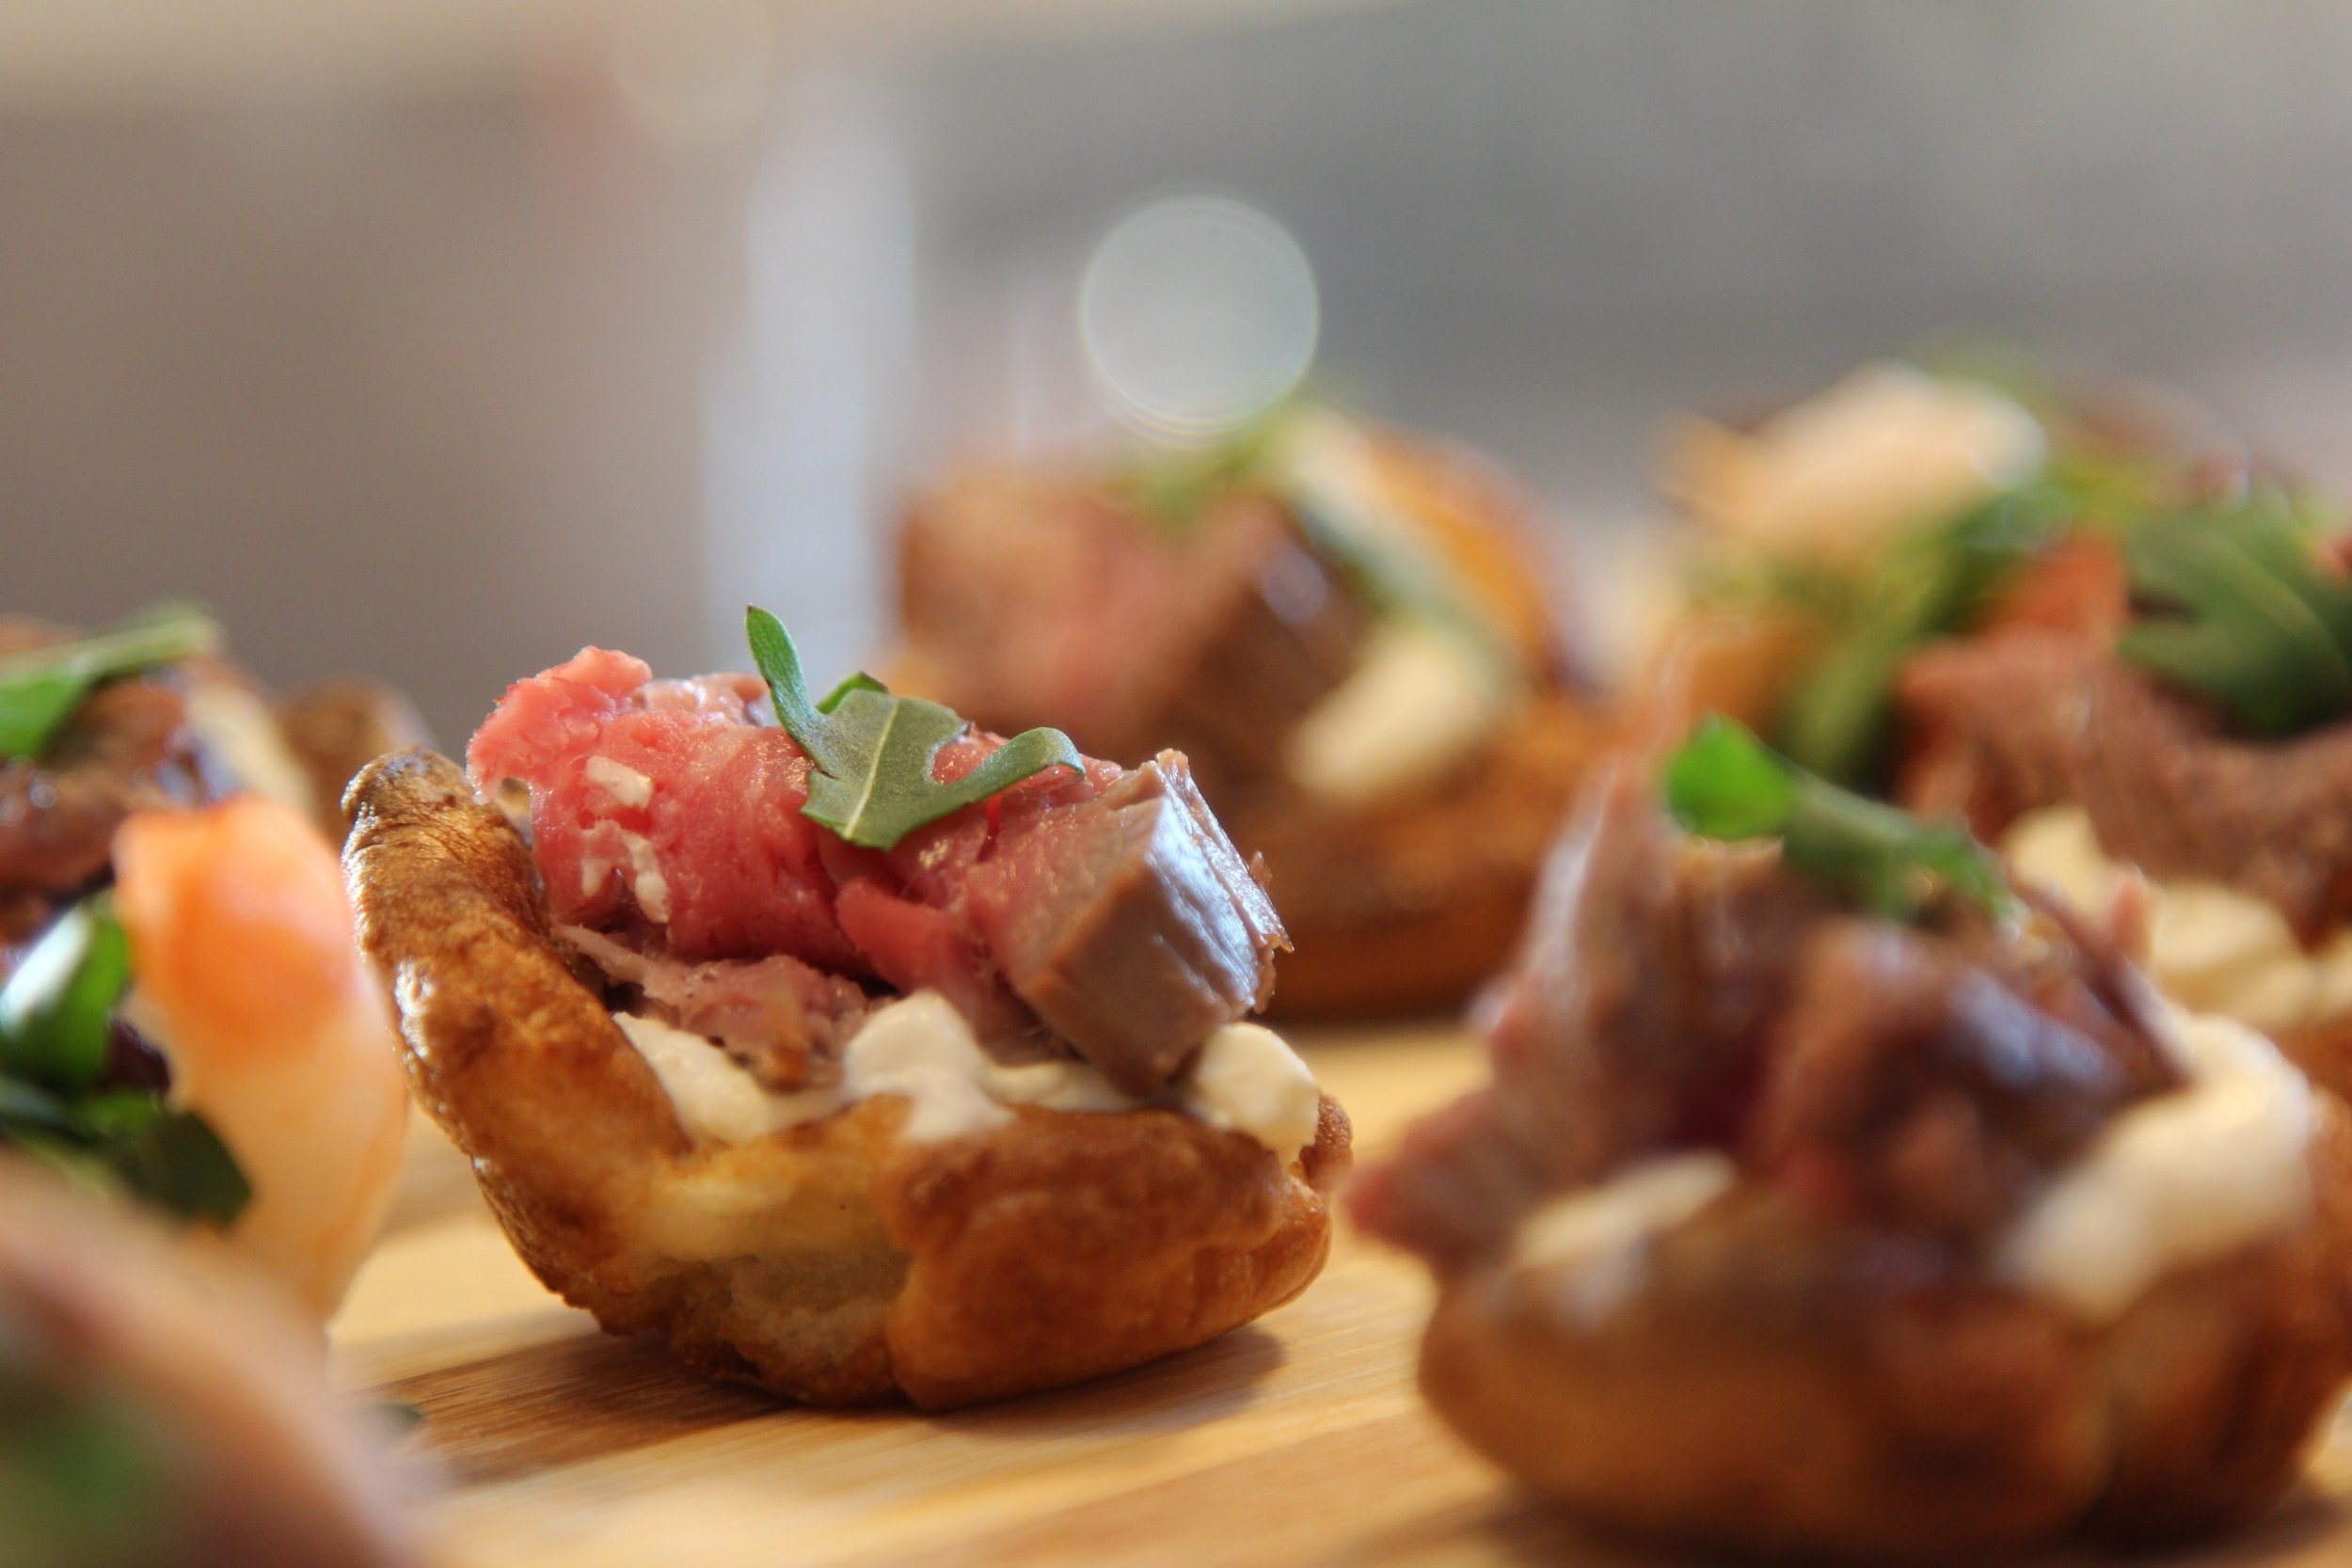 Roast beef and Yorkshire pudding canapé